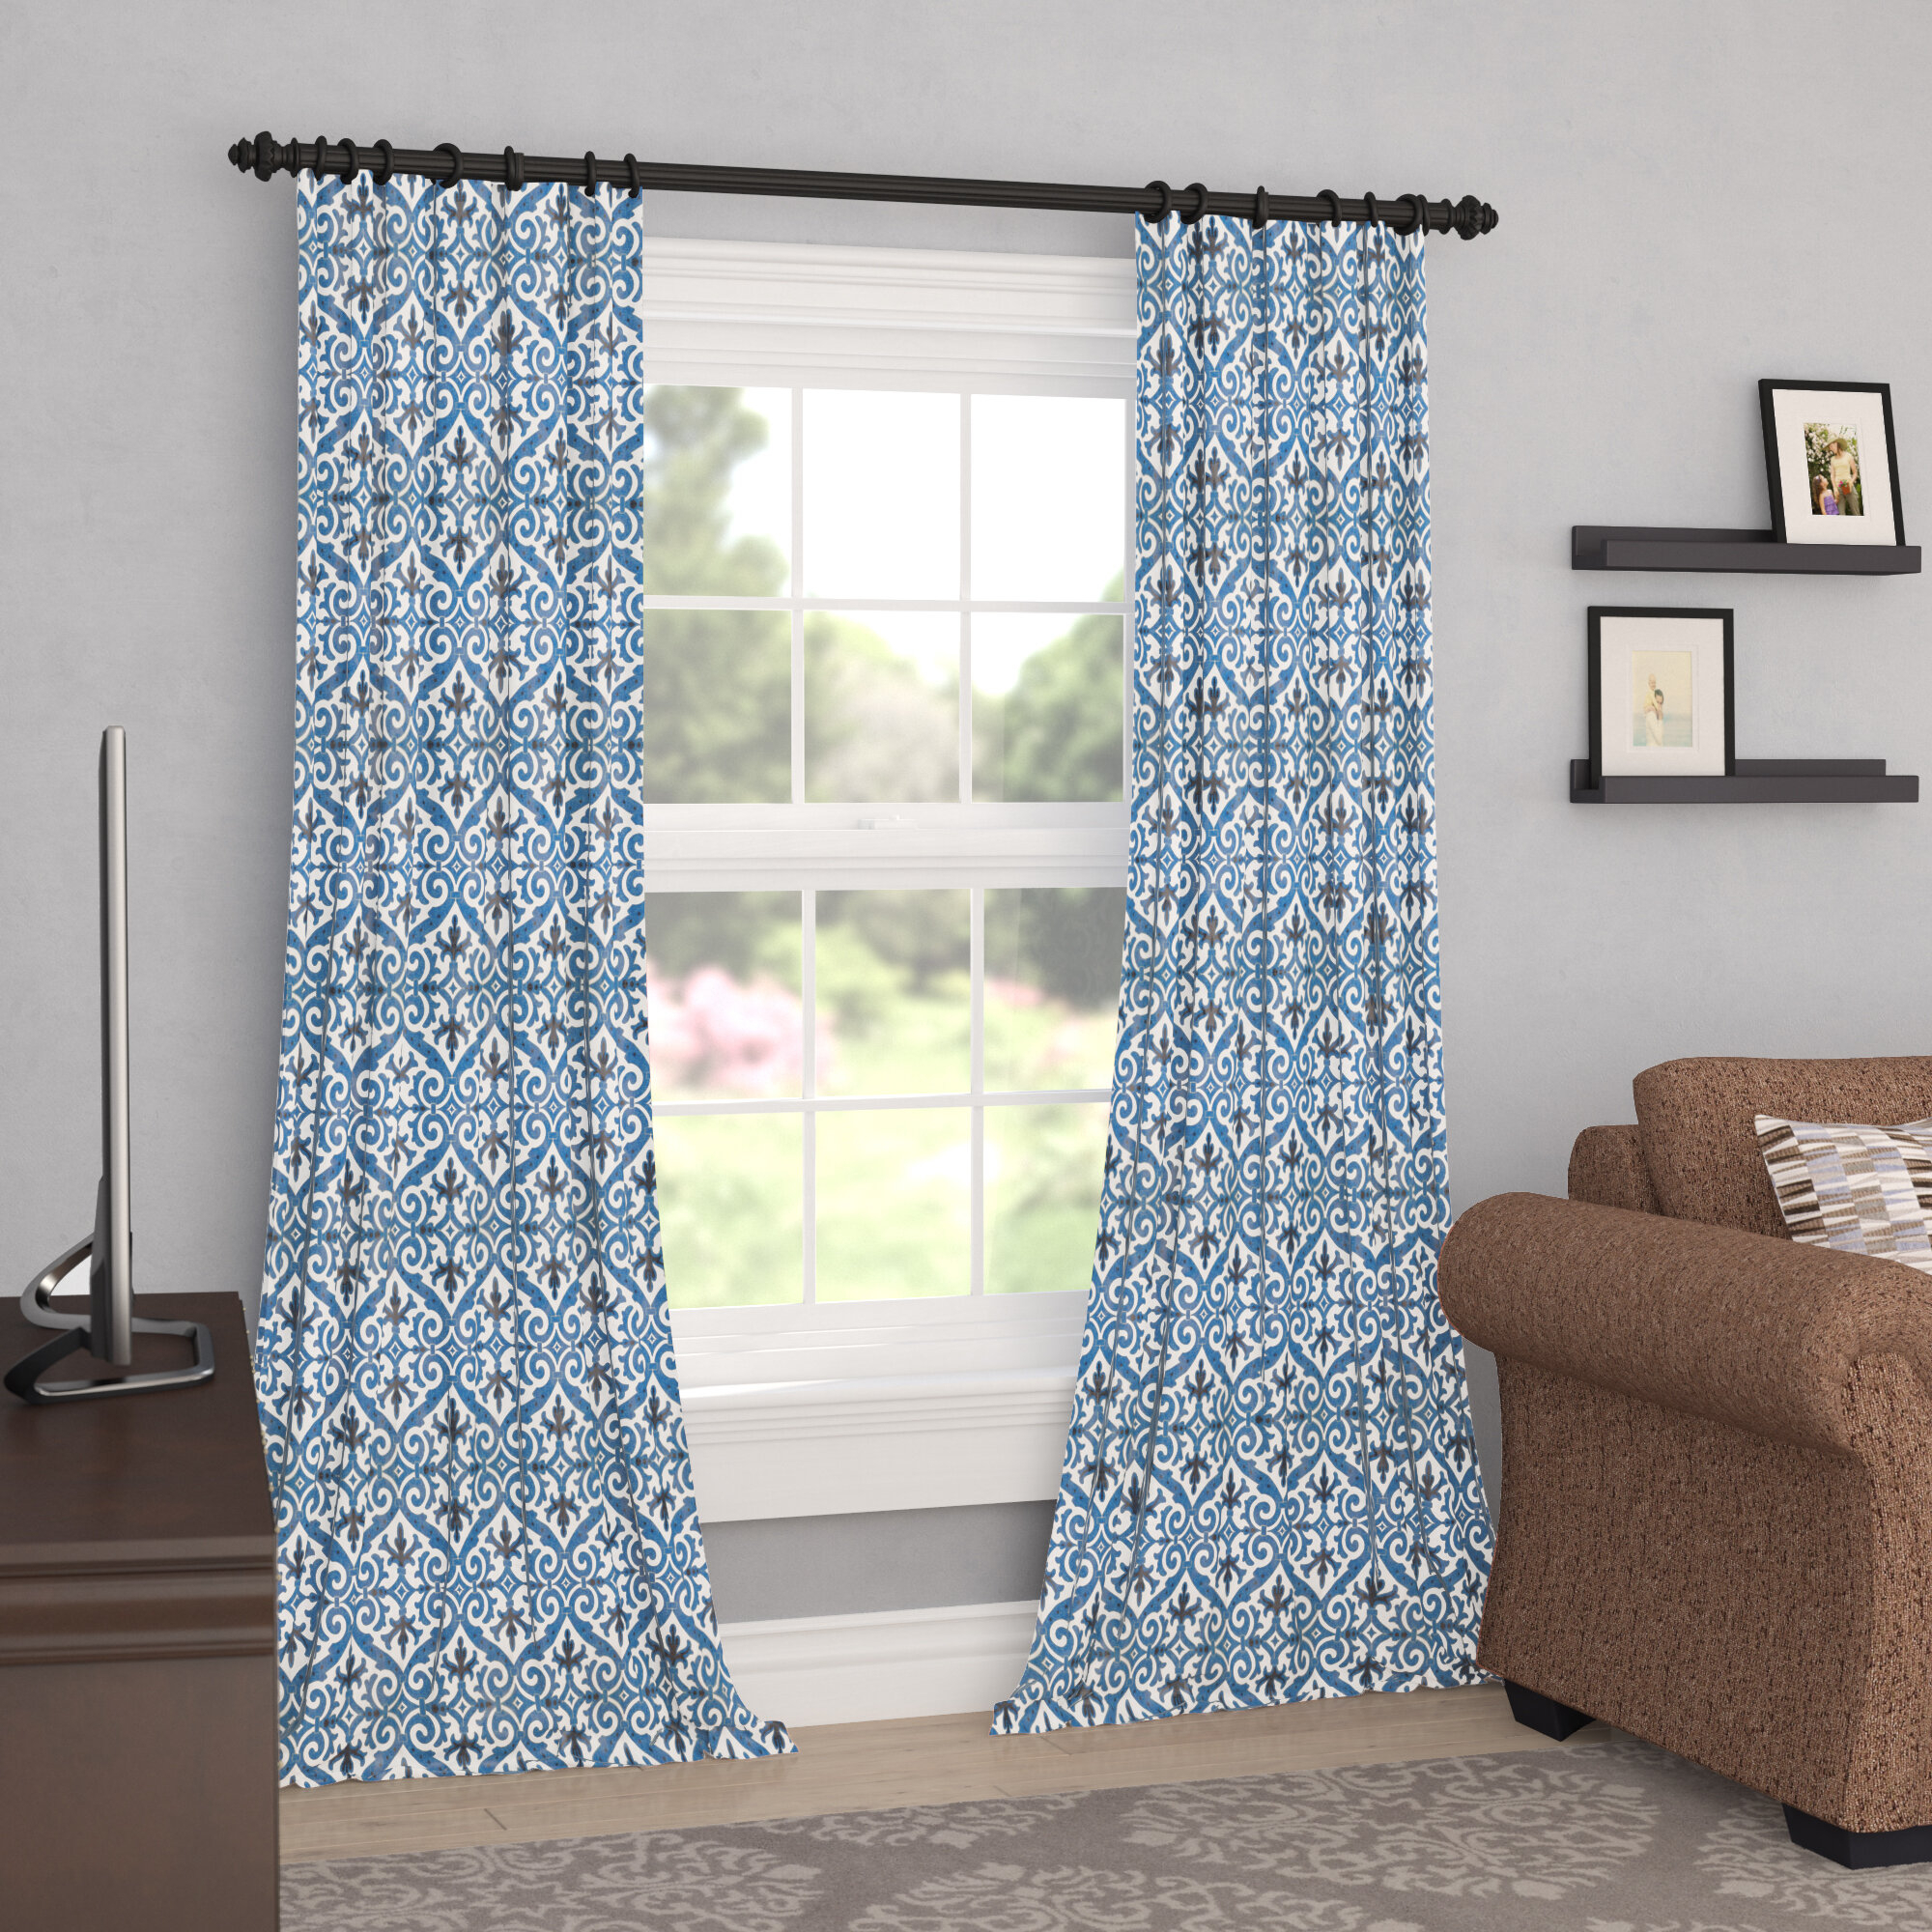 Welby Printed Faux Silk Taffeta Damask Blackout Thermal Rod Pocket Single Curtain Panel With Pastel Damask Printed Room Darkening Grommet Window Curtain Panel Pairs (View 20 of 20)